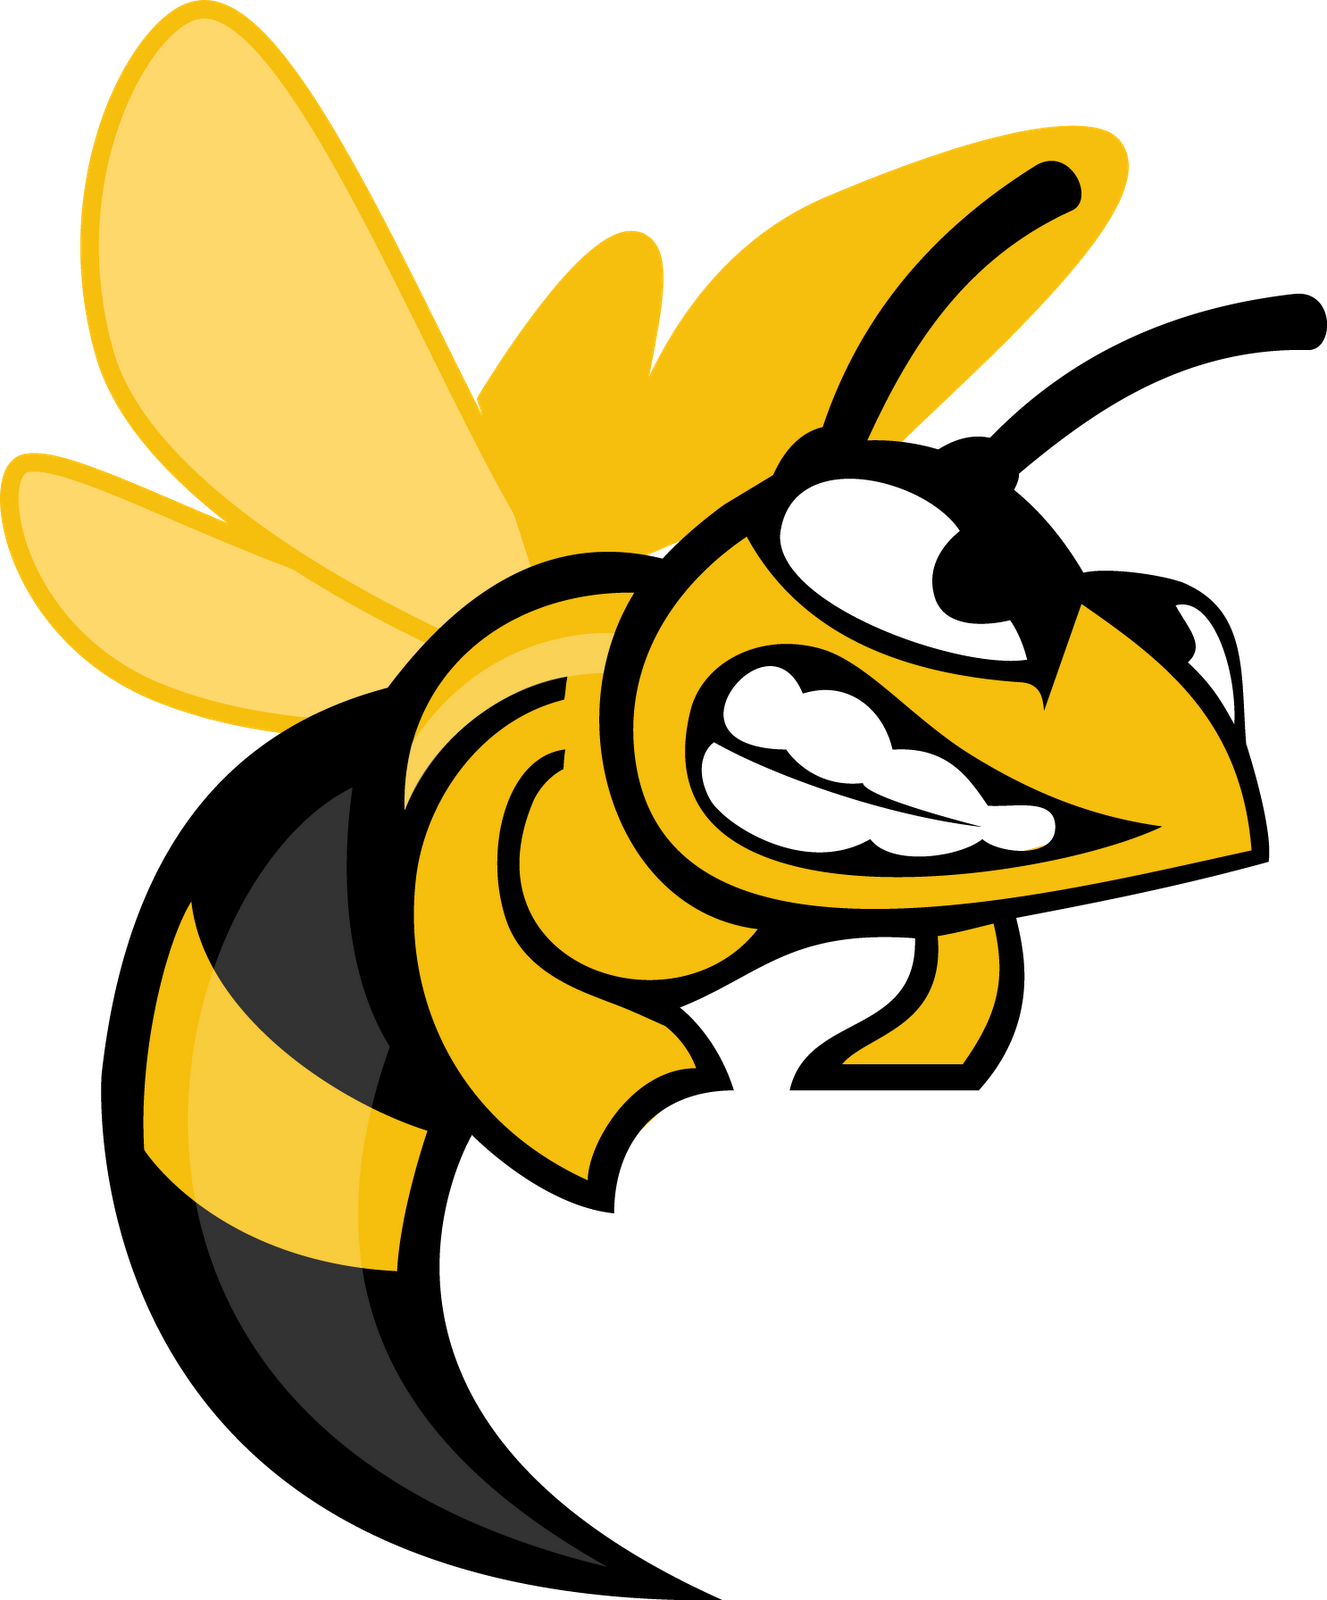 Wasp vector clipart. Image result for logos